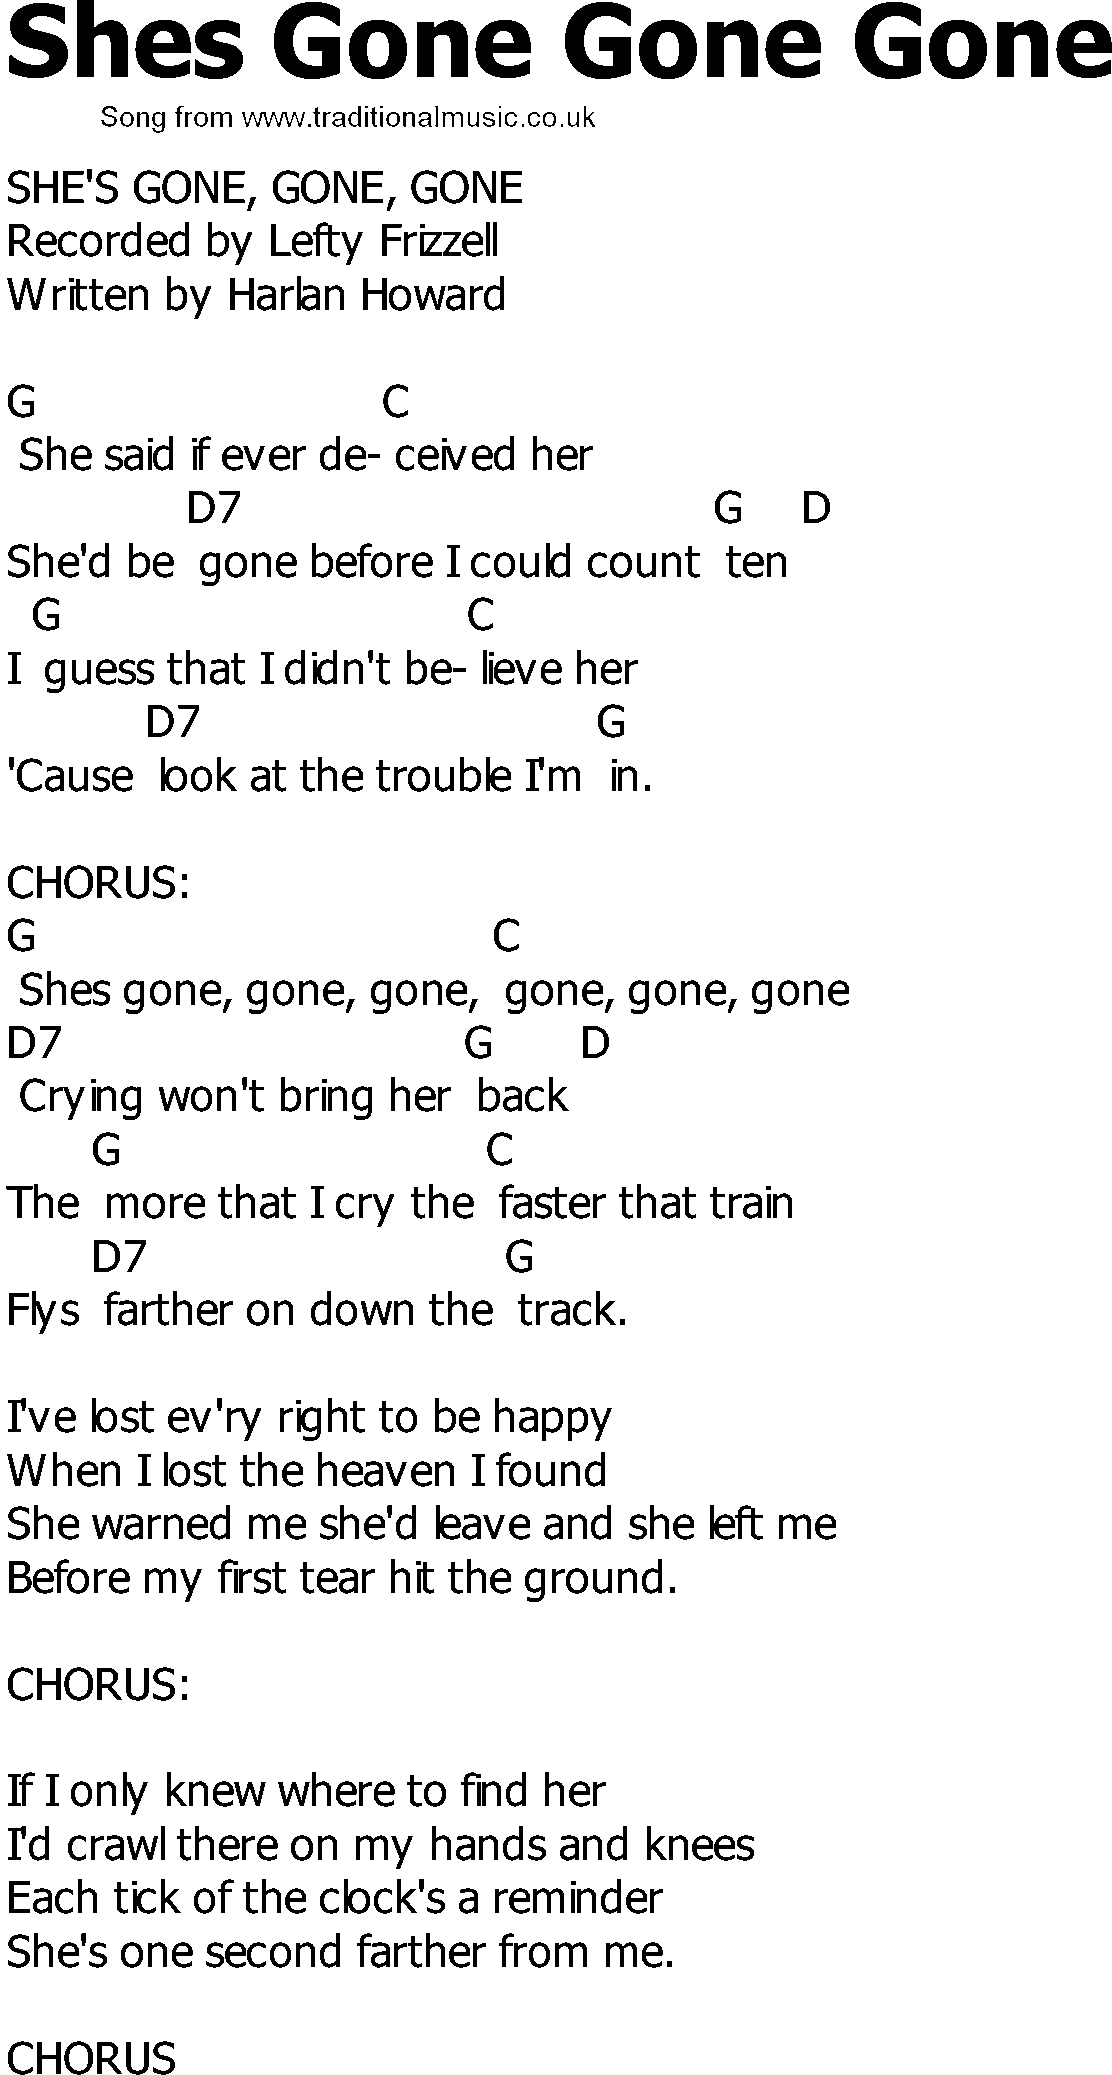 Songs with gone in the lyrics